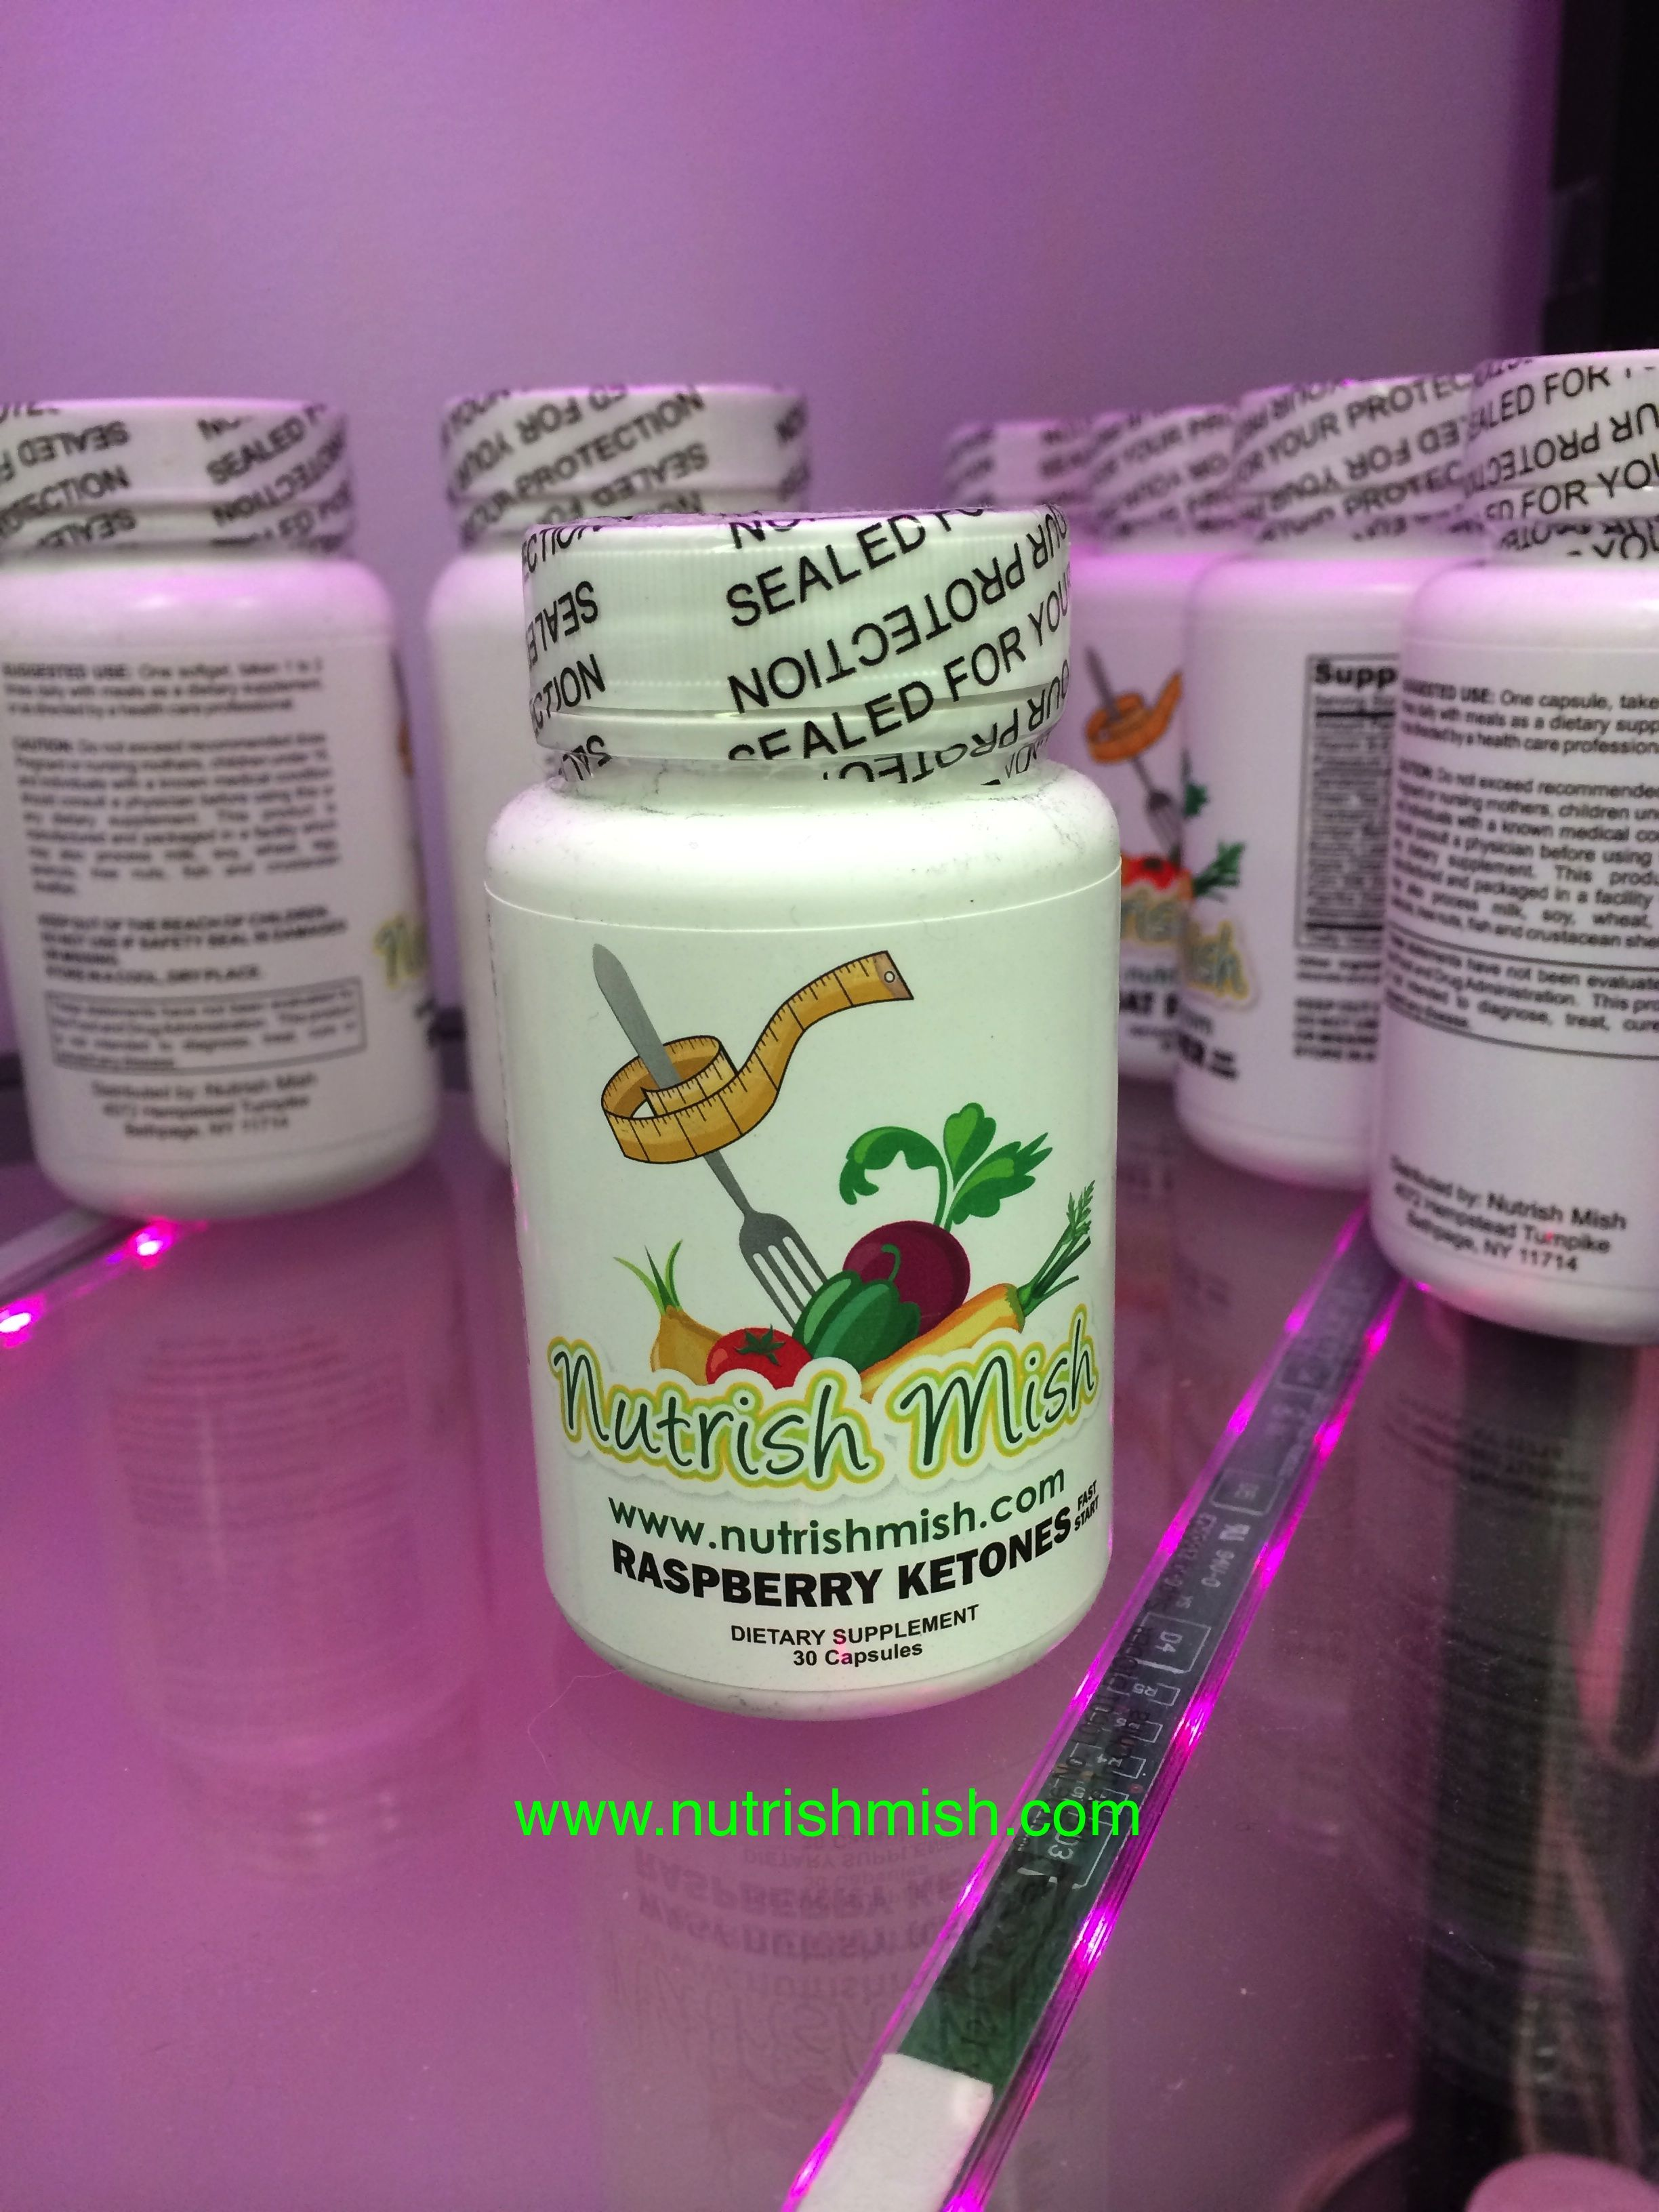 Recent studies suggest that raspberry ketones go to the powerhouse of your cell (mitochondria) and helps it do its job like a CEO. This can lead to body fat reduction when coupled with a healthful diet and exercise of course $20